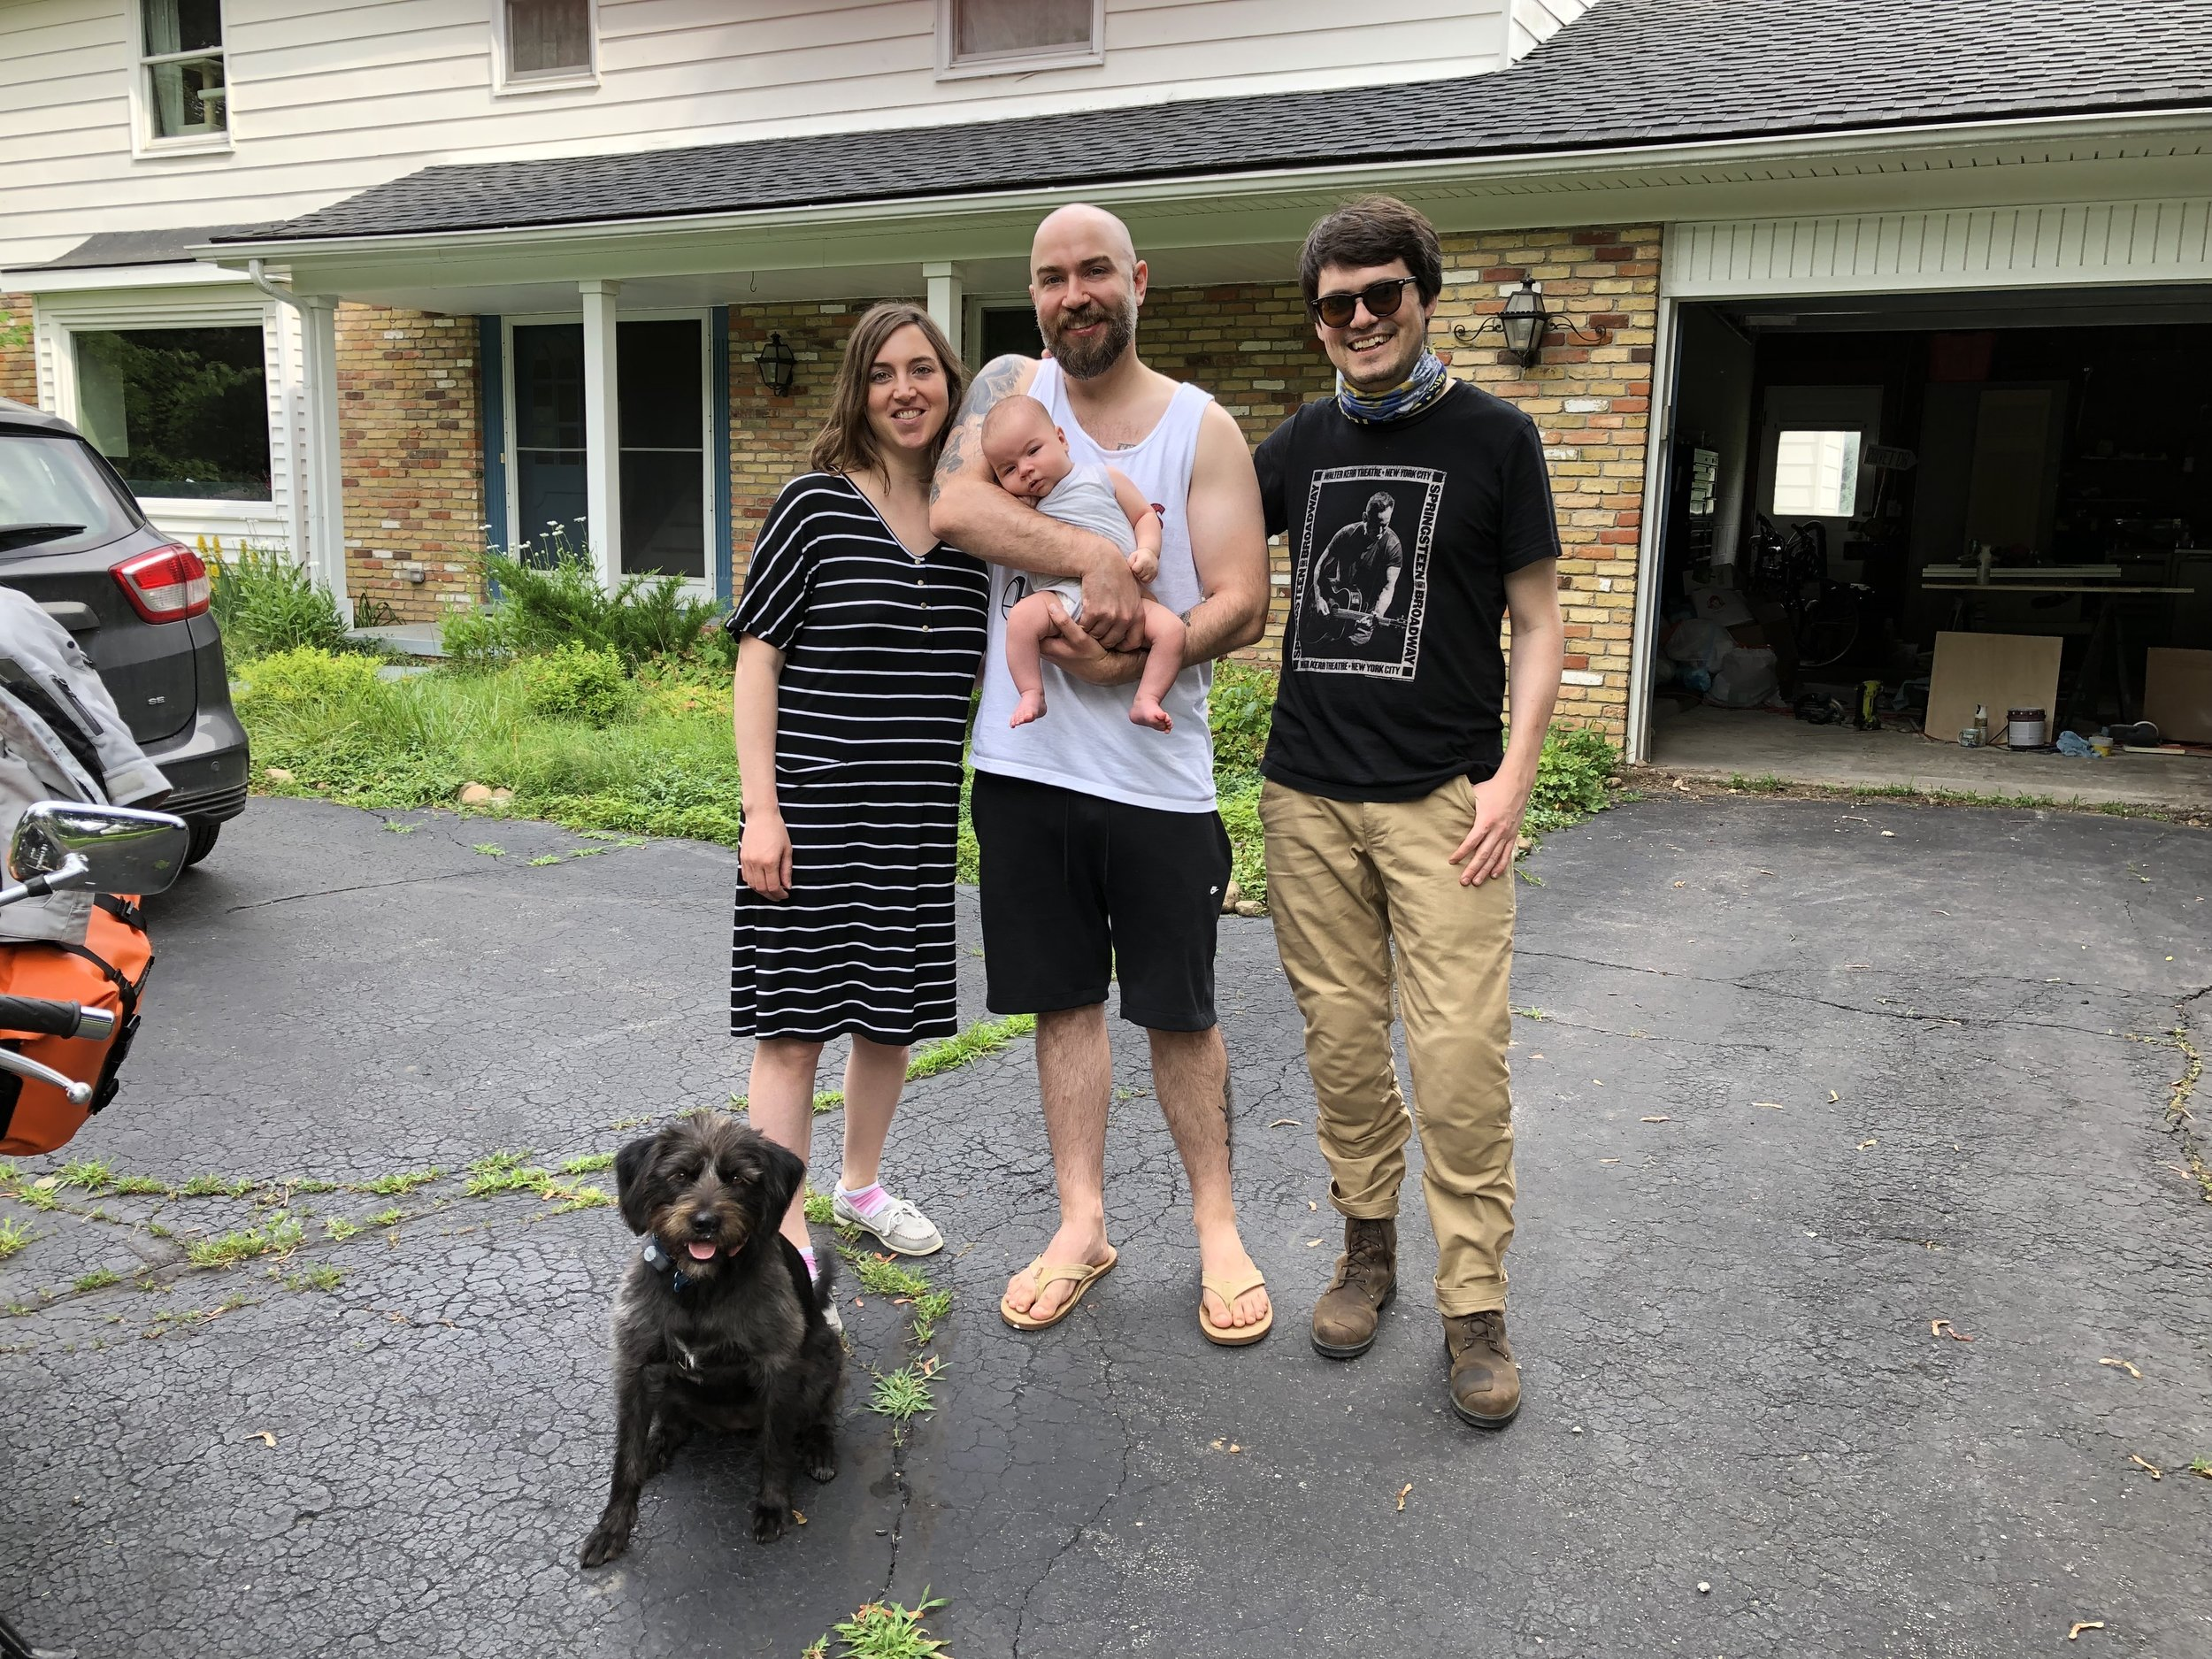 L to R: Edie the family dog, Zac's wife Suzy, their son Alfred, Zac, me.